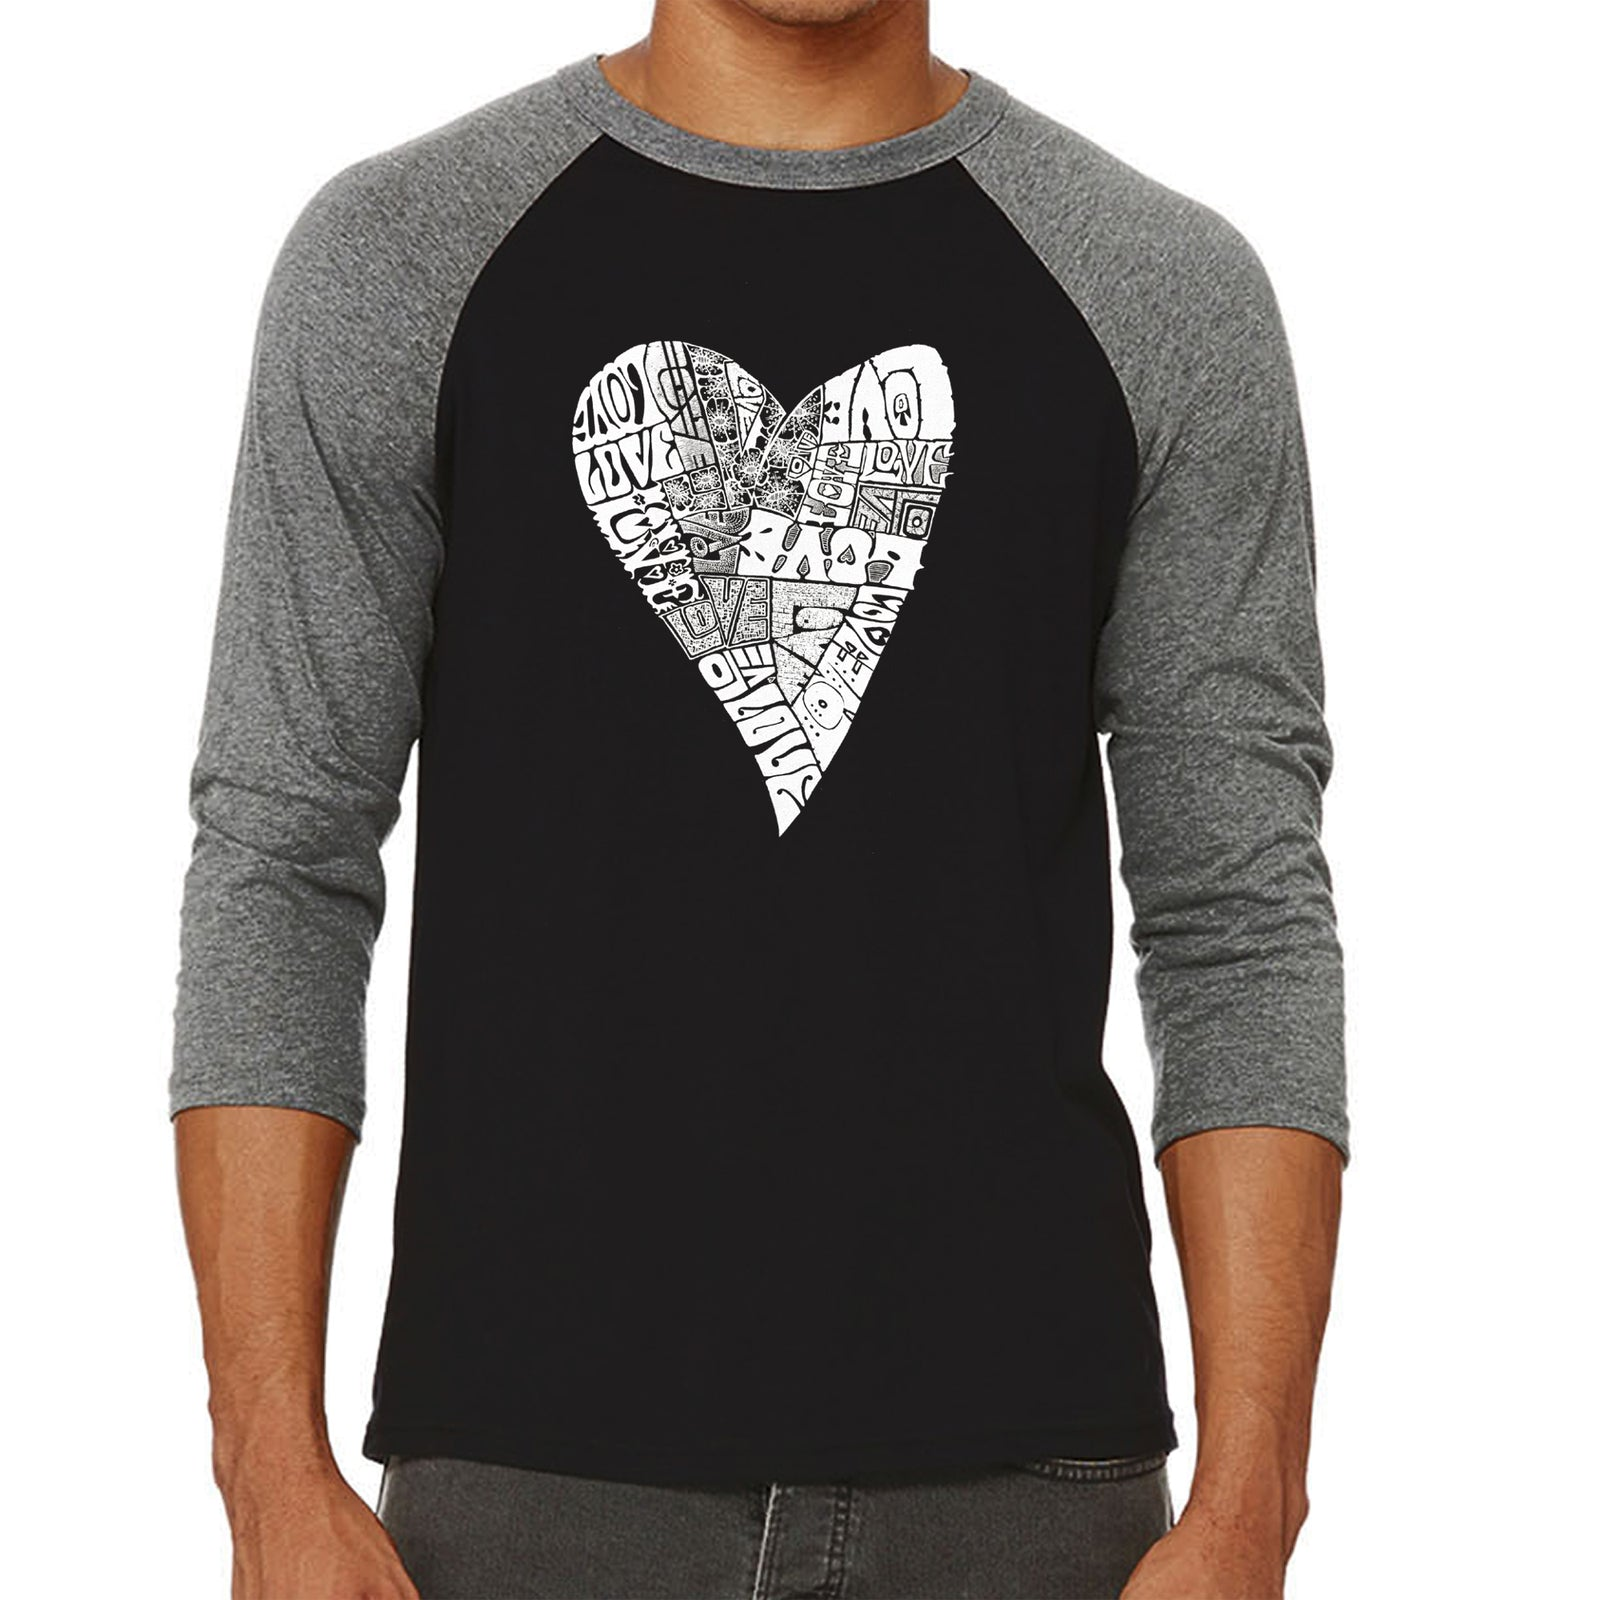 Men's Raglan Baseball Word Art T-shirt - Lots of Love